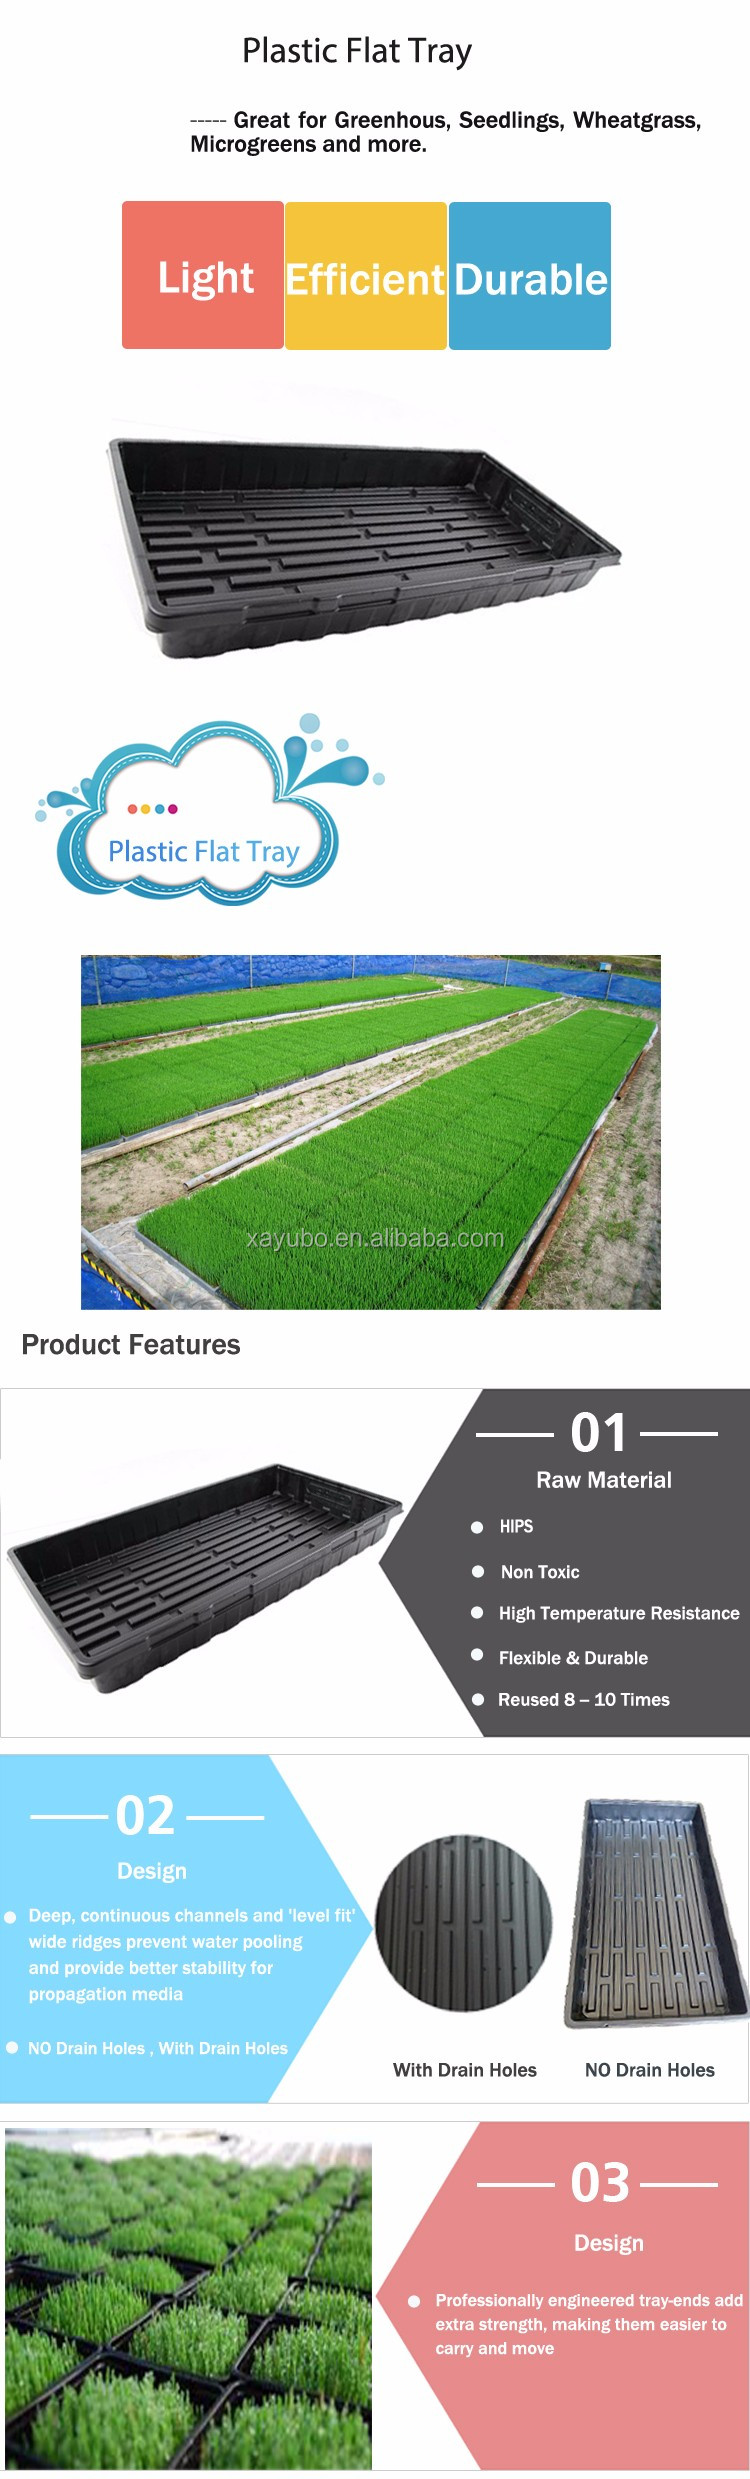 Hot Sale Reuse Black Plastic Flat Tray With Holes For Microgreens